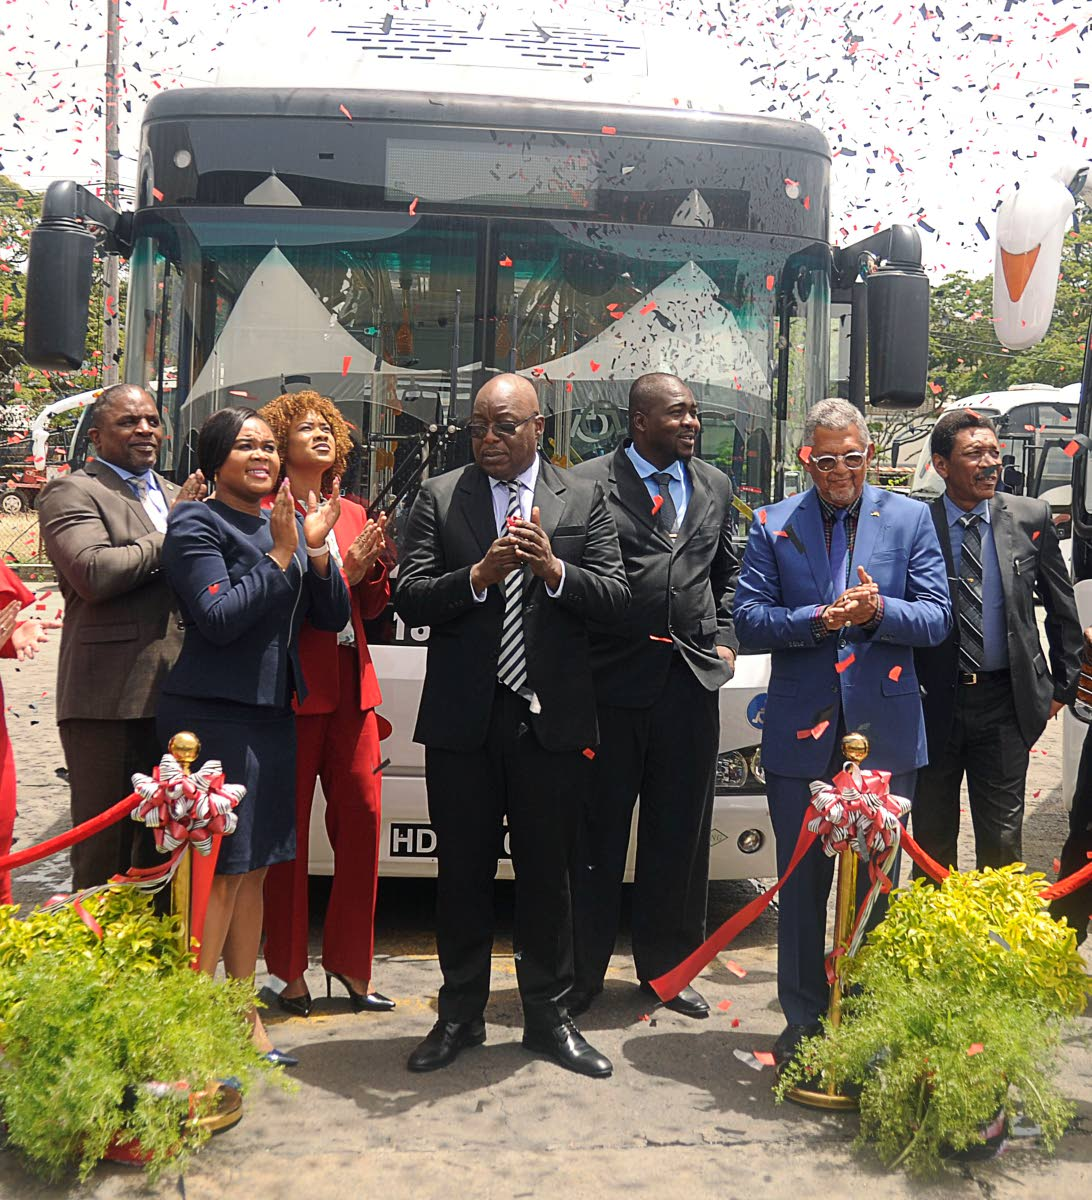 Chief Secretary Kelvin Charles, fourth from left, applauds at the commissioning of 15 new buses for Tobago on Tuesday along with, from left, Finance Secretary Joel Jack,MP for Tobago West, Sports Minister Shamfa Cudjoe, MP for Tobago East, Minister of State in the Office of the Prime Minister -Ayanna Webster-Roy, Public Utilities Secretary Clarence Jacob and PTSC Chairman Edwin Gooding. The commissioning and blessing ceremony of the new PTSC buses was held at the bus depot, Old Government Farm Road, Shaw Park.  THA photo